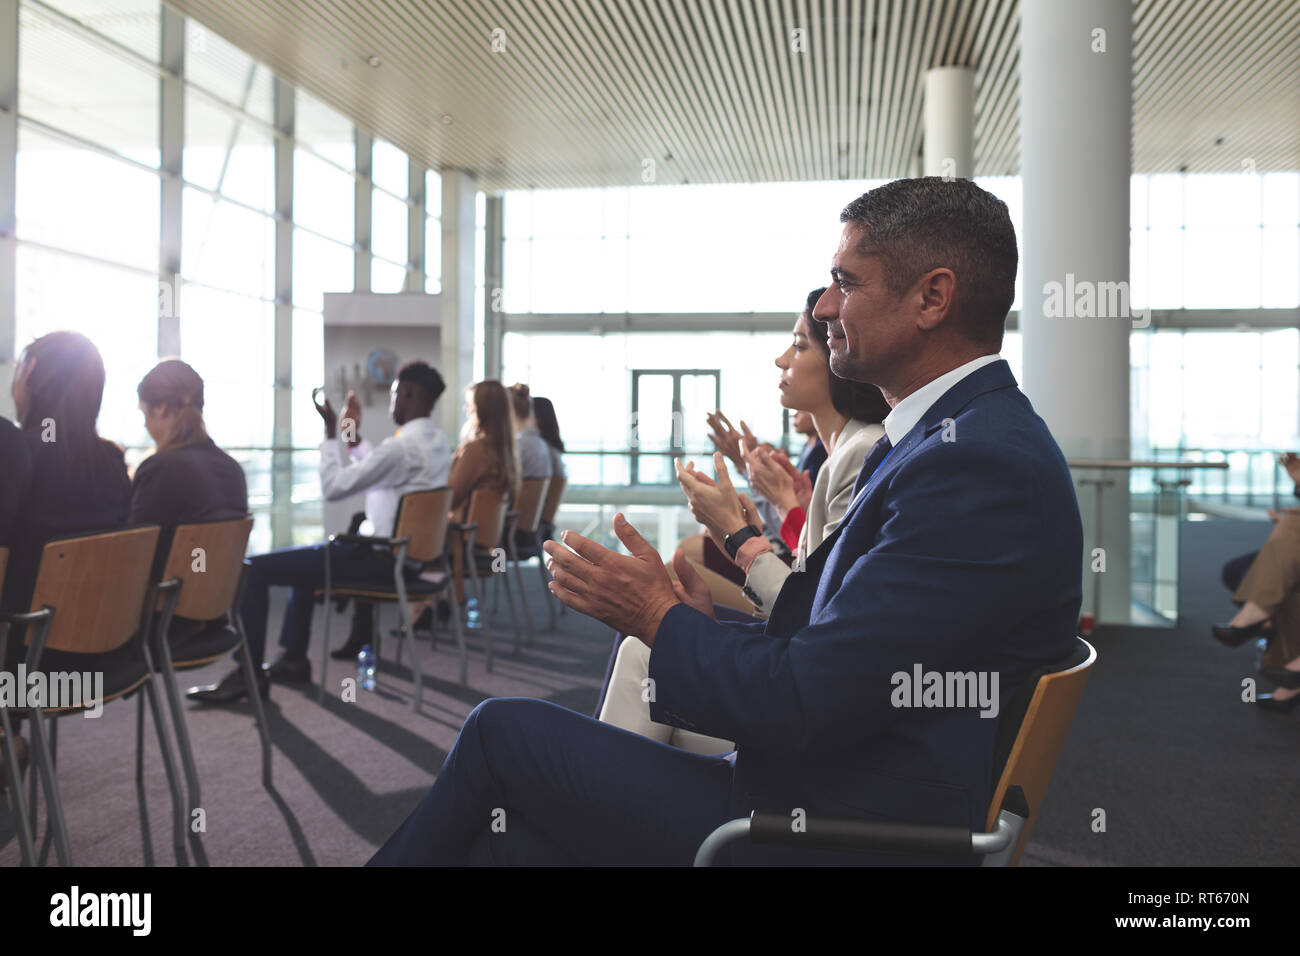 Business people applauding in a business seminar Stock Photo